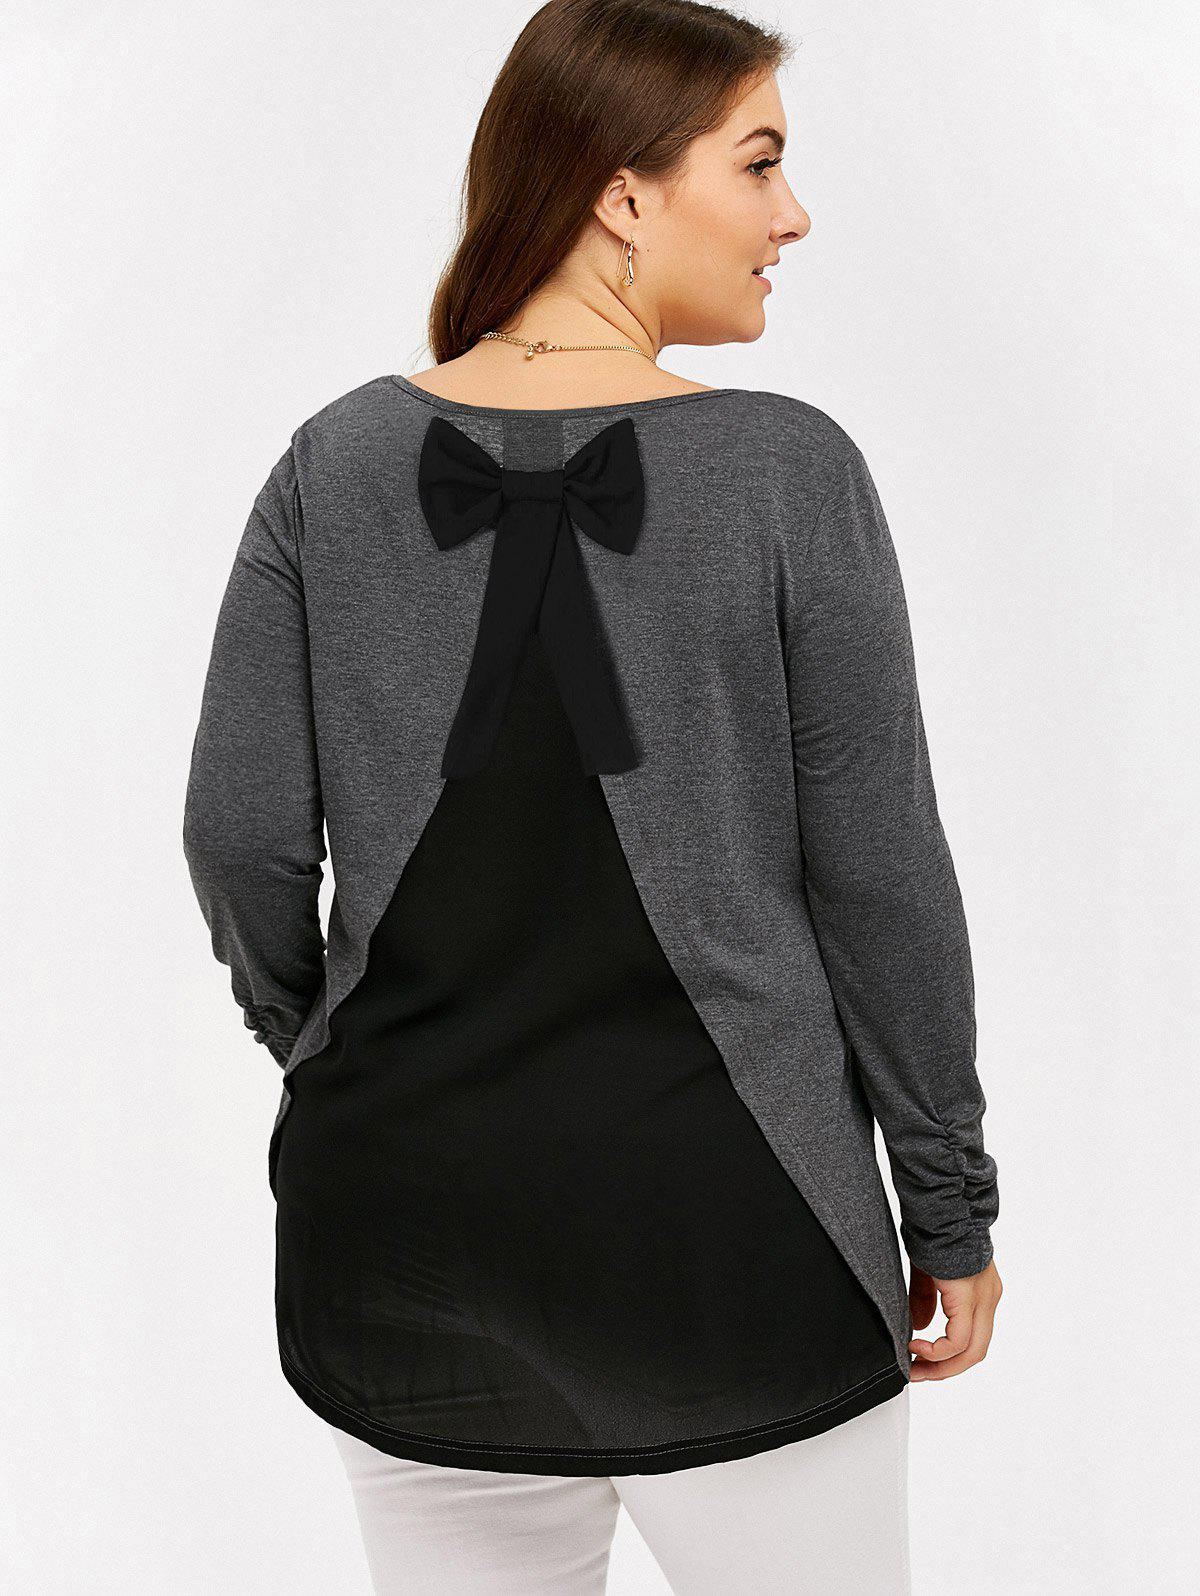 Plus Size Bowknot Insert Tunic T-ShirtWomen<br><br><br>Size: 3XL<br>Color: BLACK AND GREY